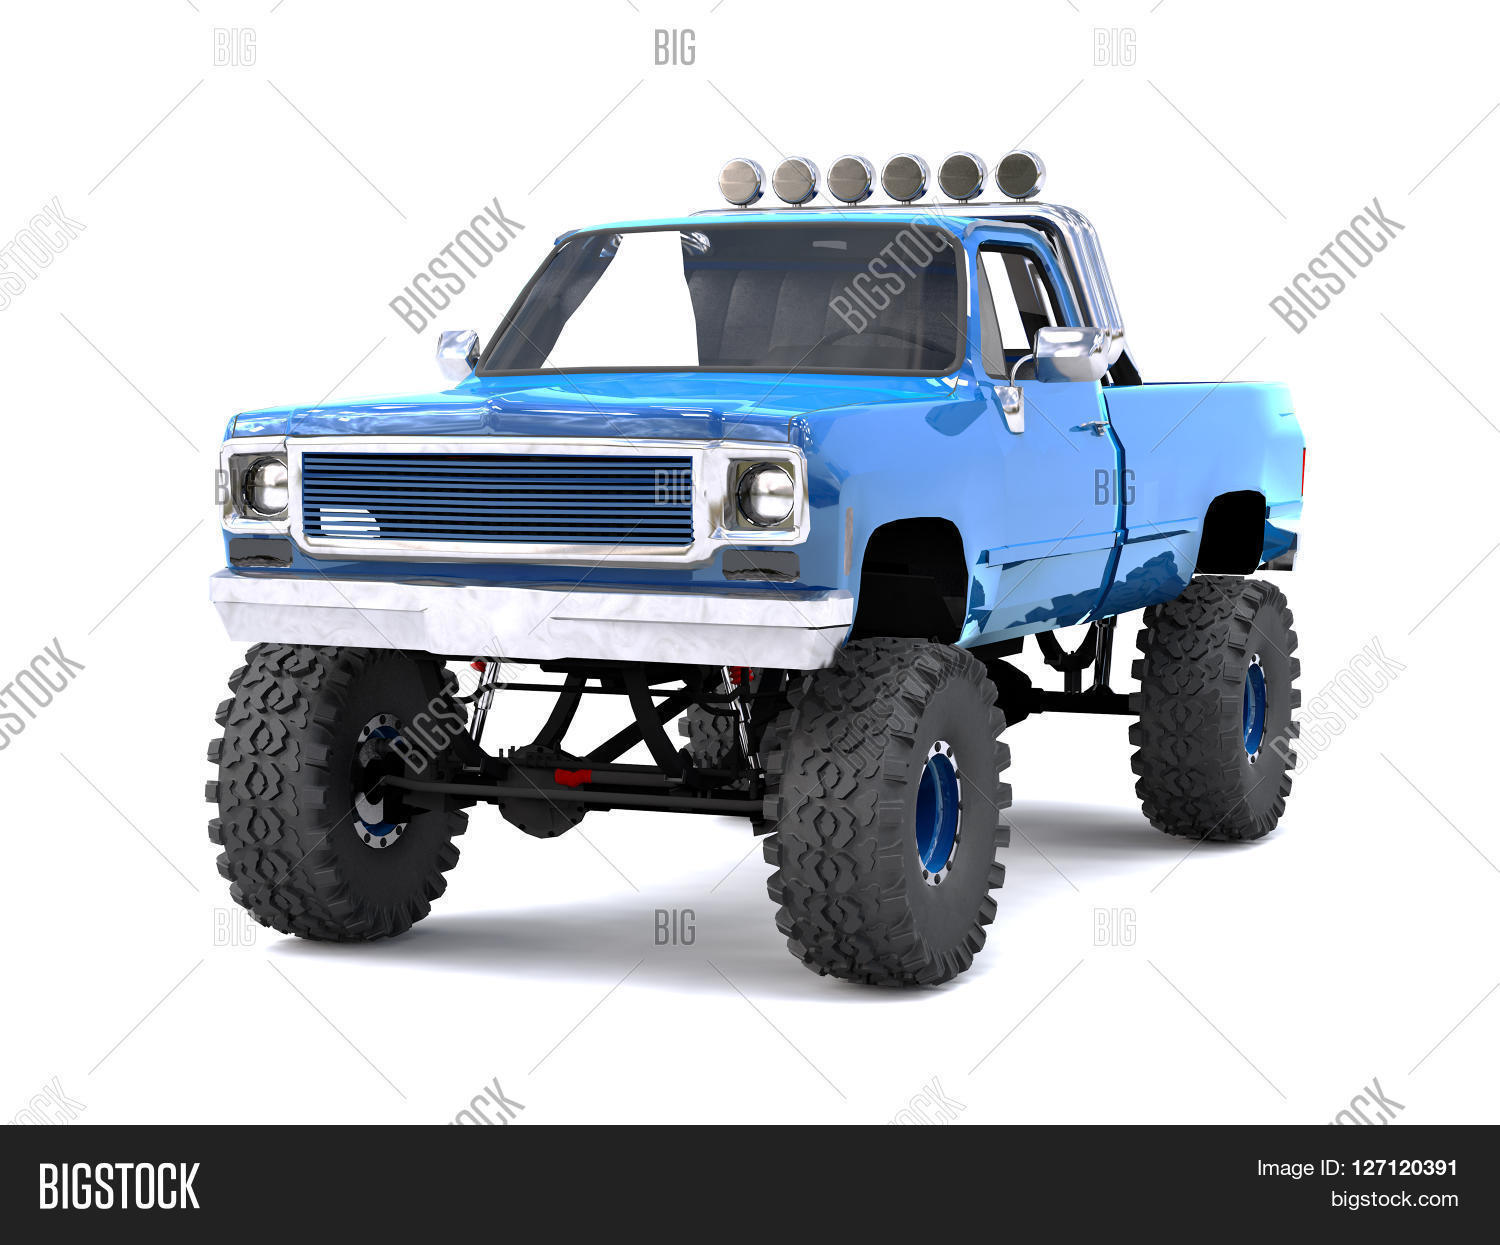 Large blue pickup image photo free trial bigstock a large blue pickup truck off road full off road training highly publicscrutiny Images